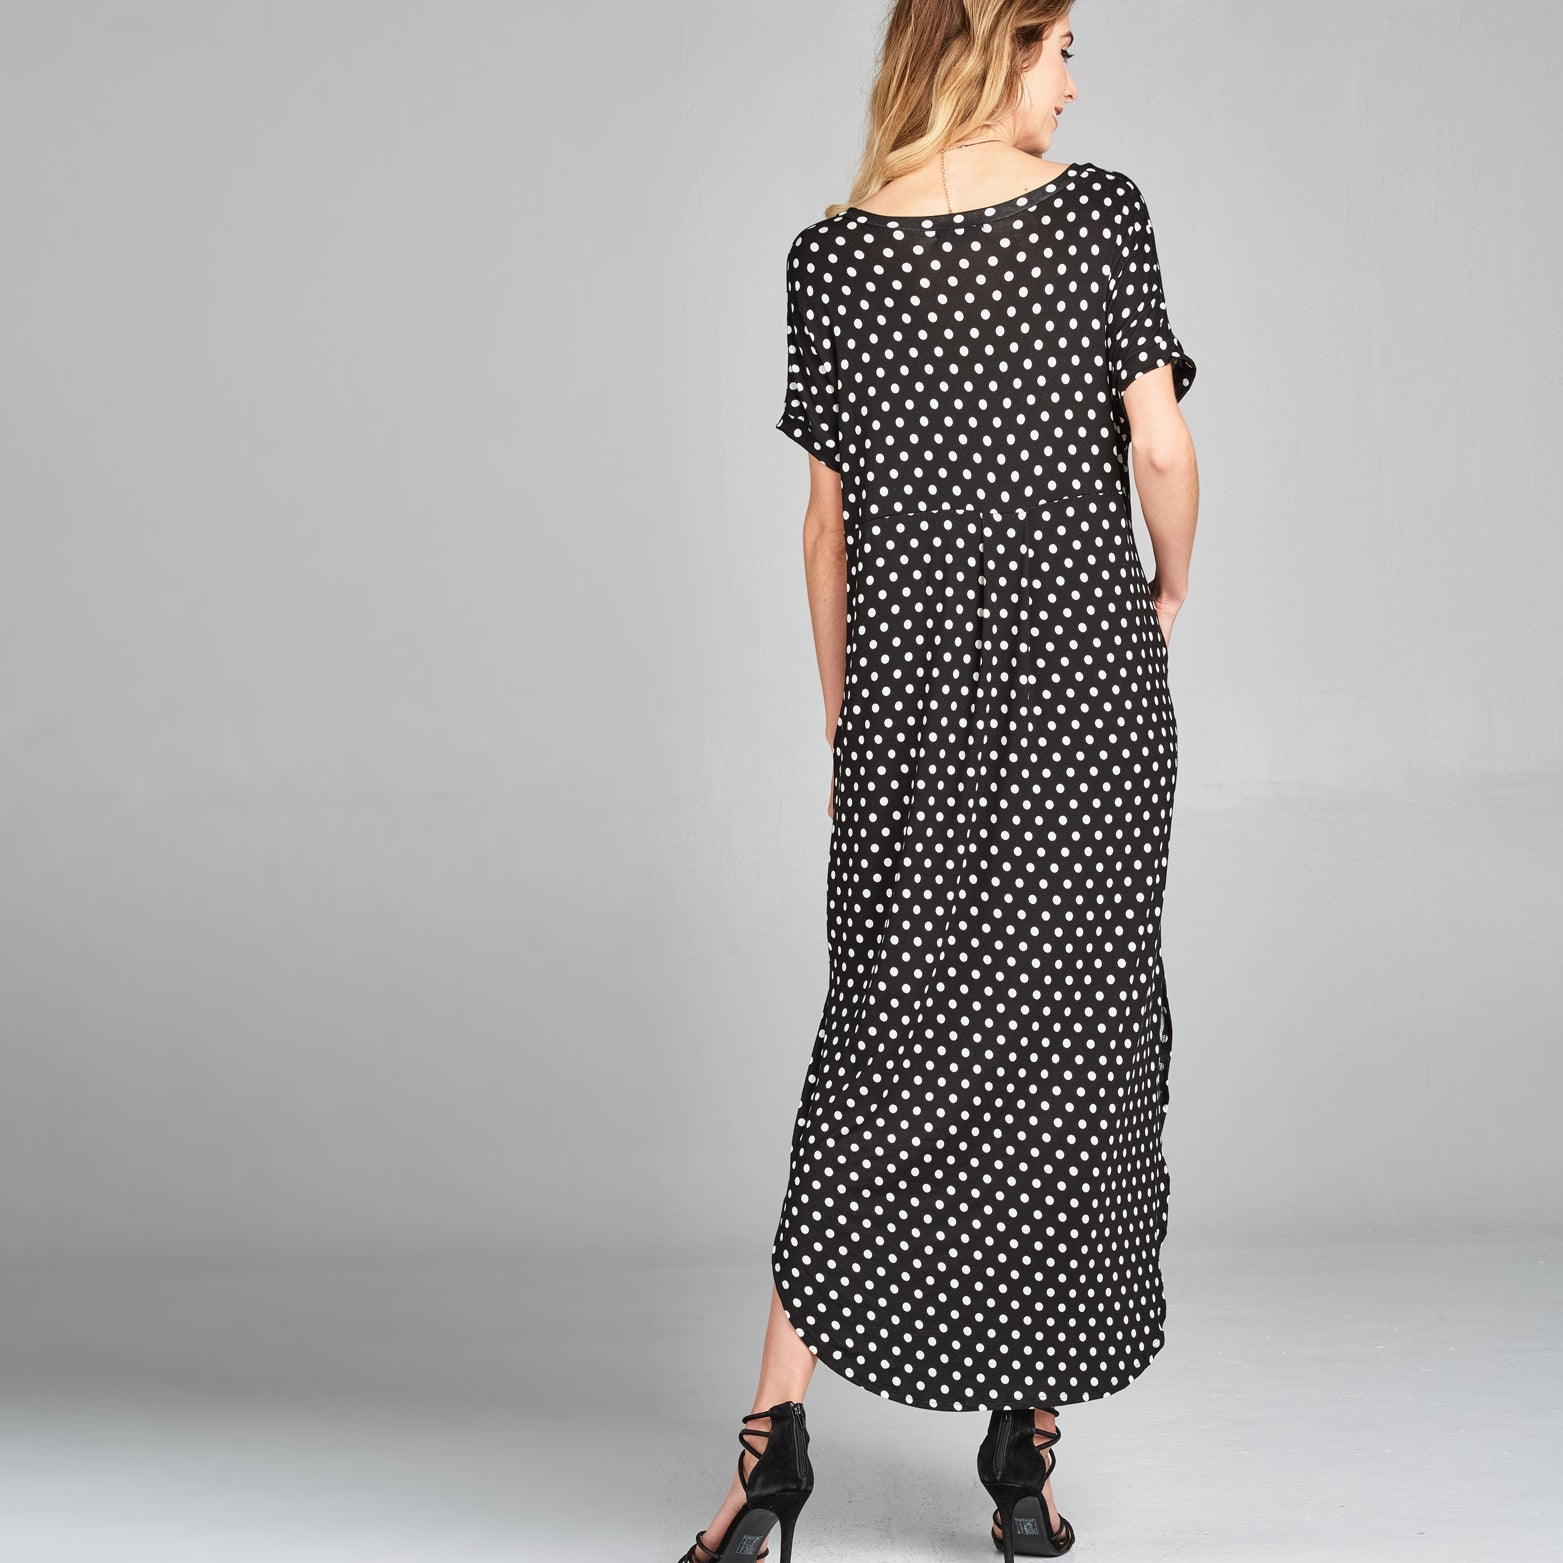 RL Polka Dot Maxi Dress